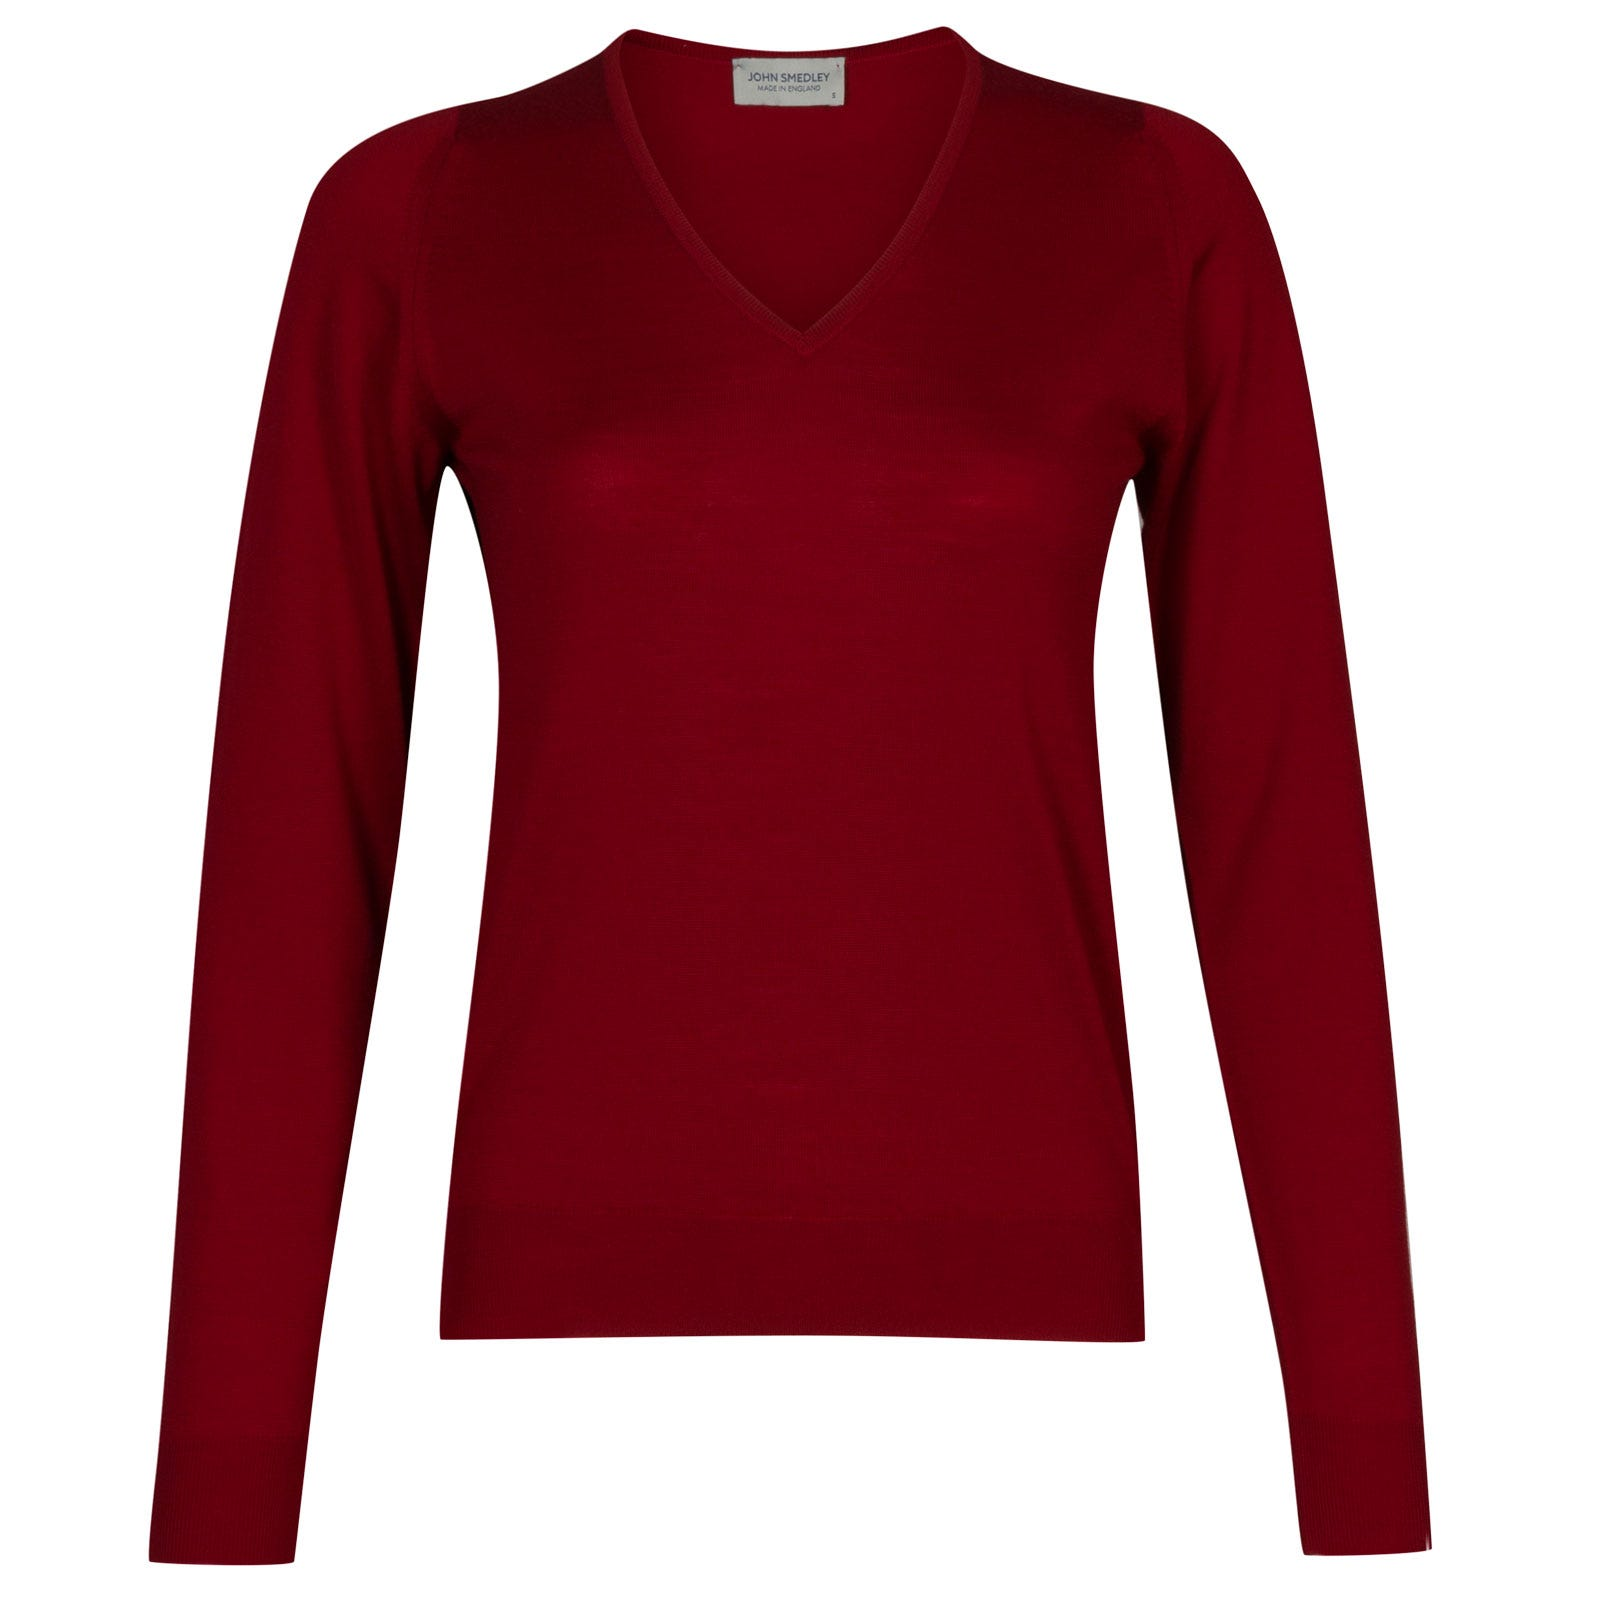 John Smedley manarola Merino Wool Sweater in Crimson Forest-S